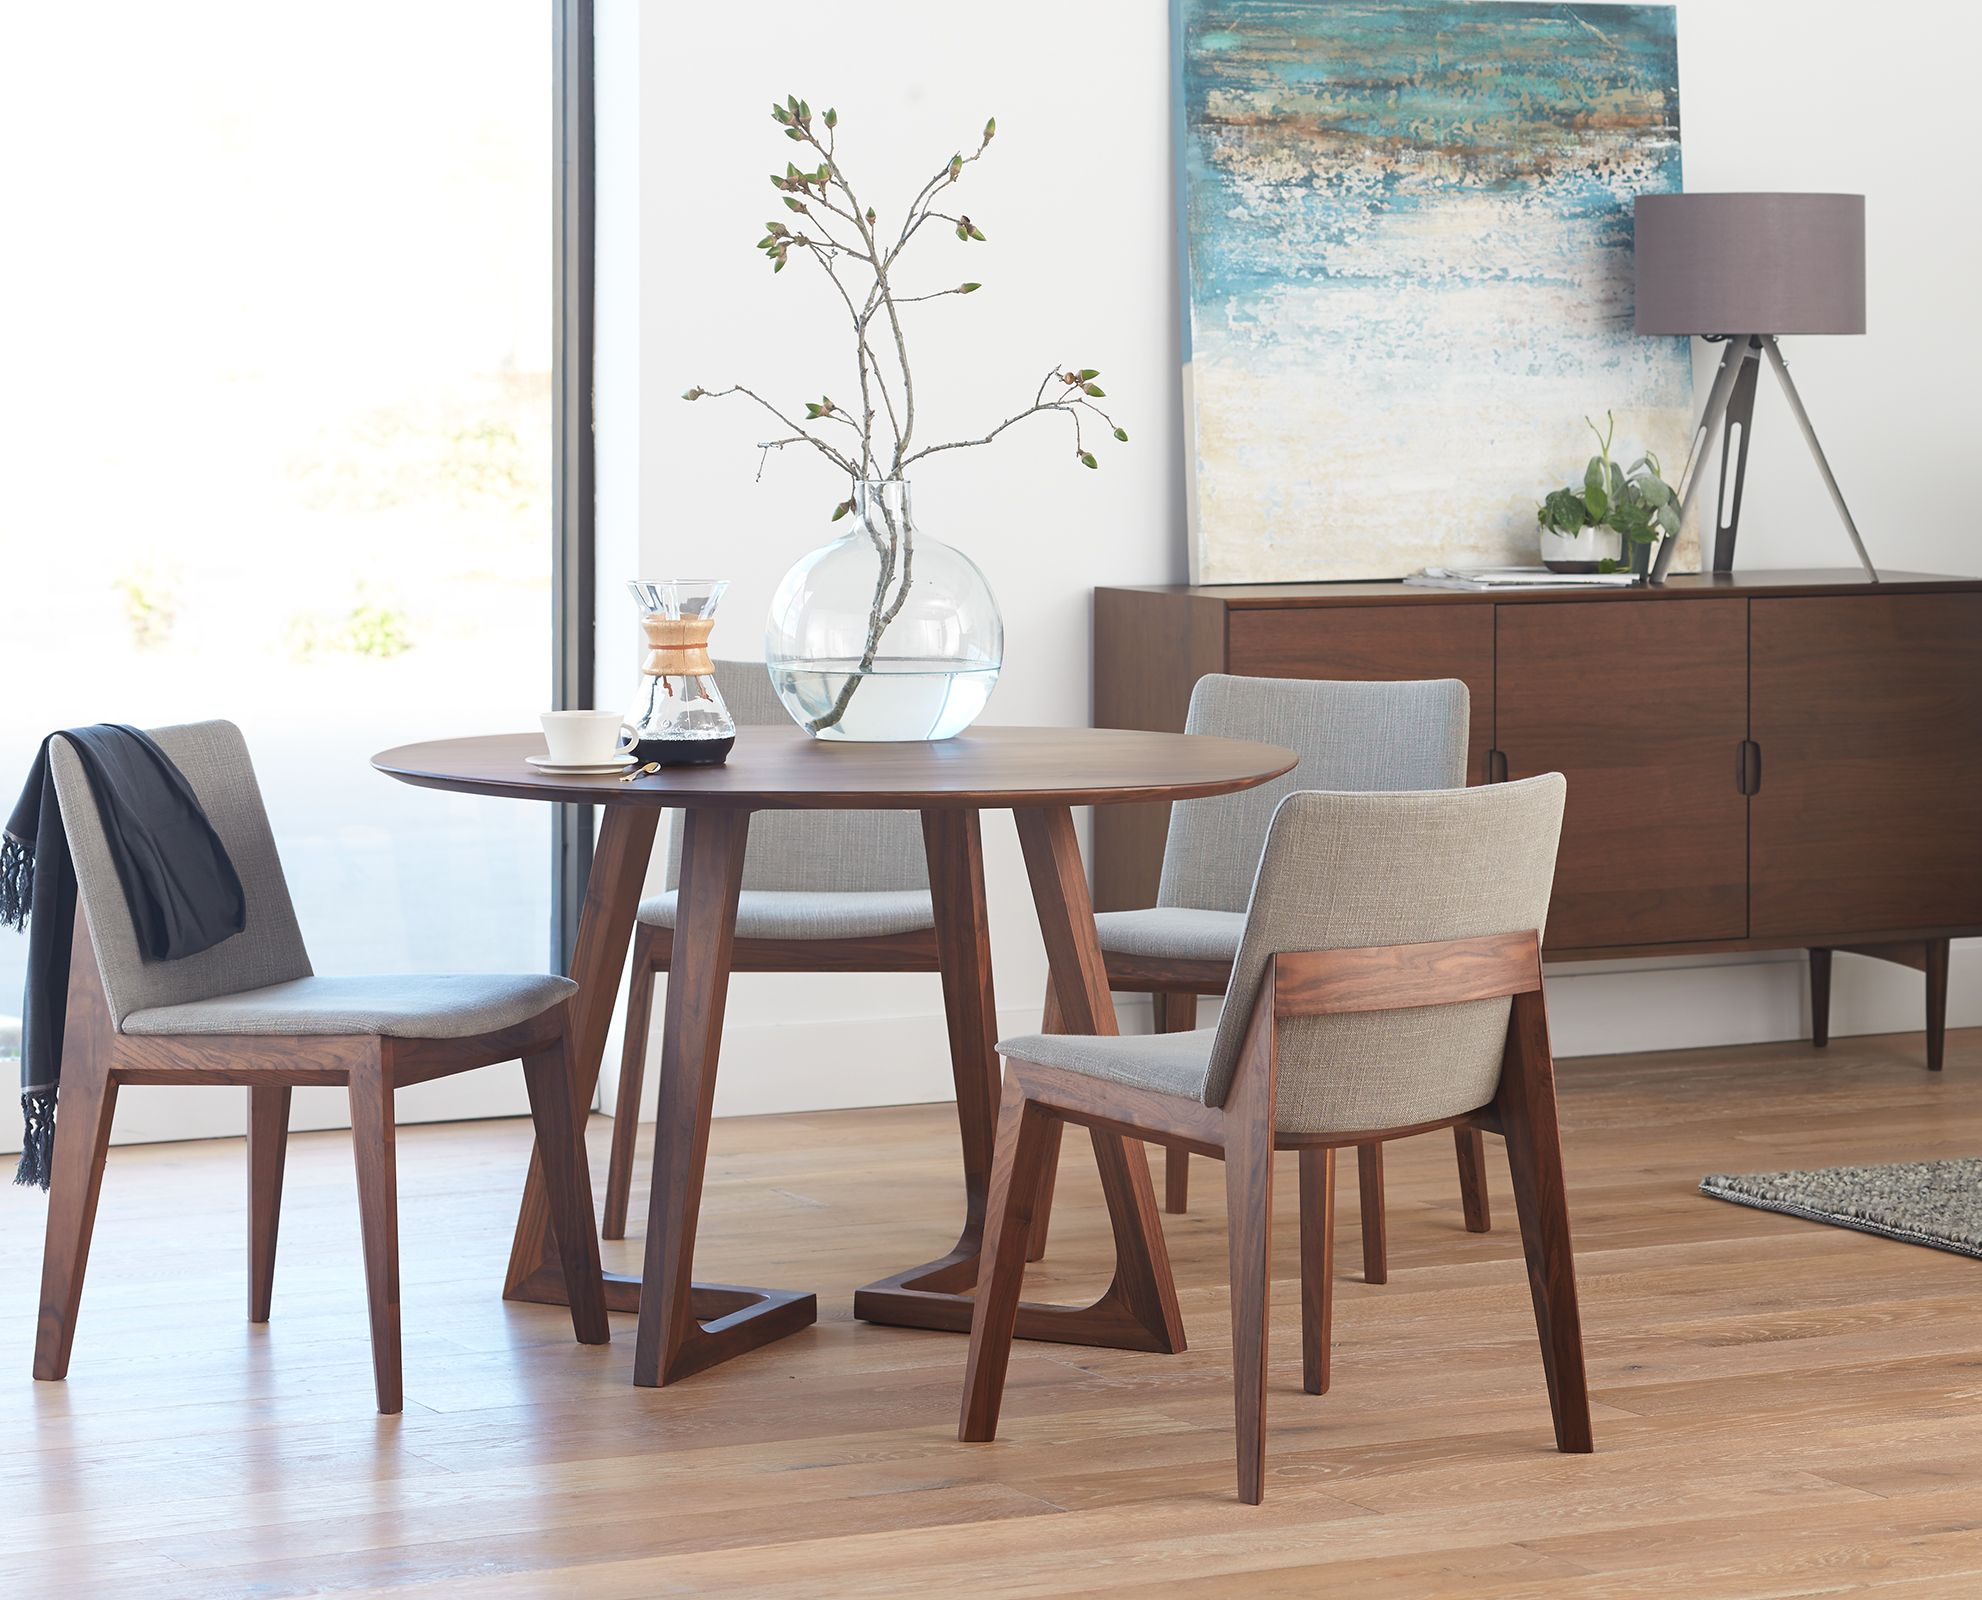 Round Table And Chairs From Dania Condo Pinterest